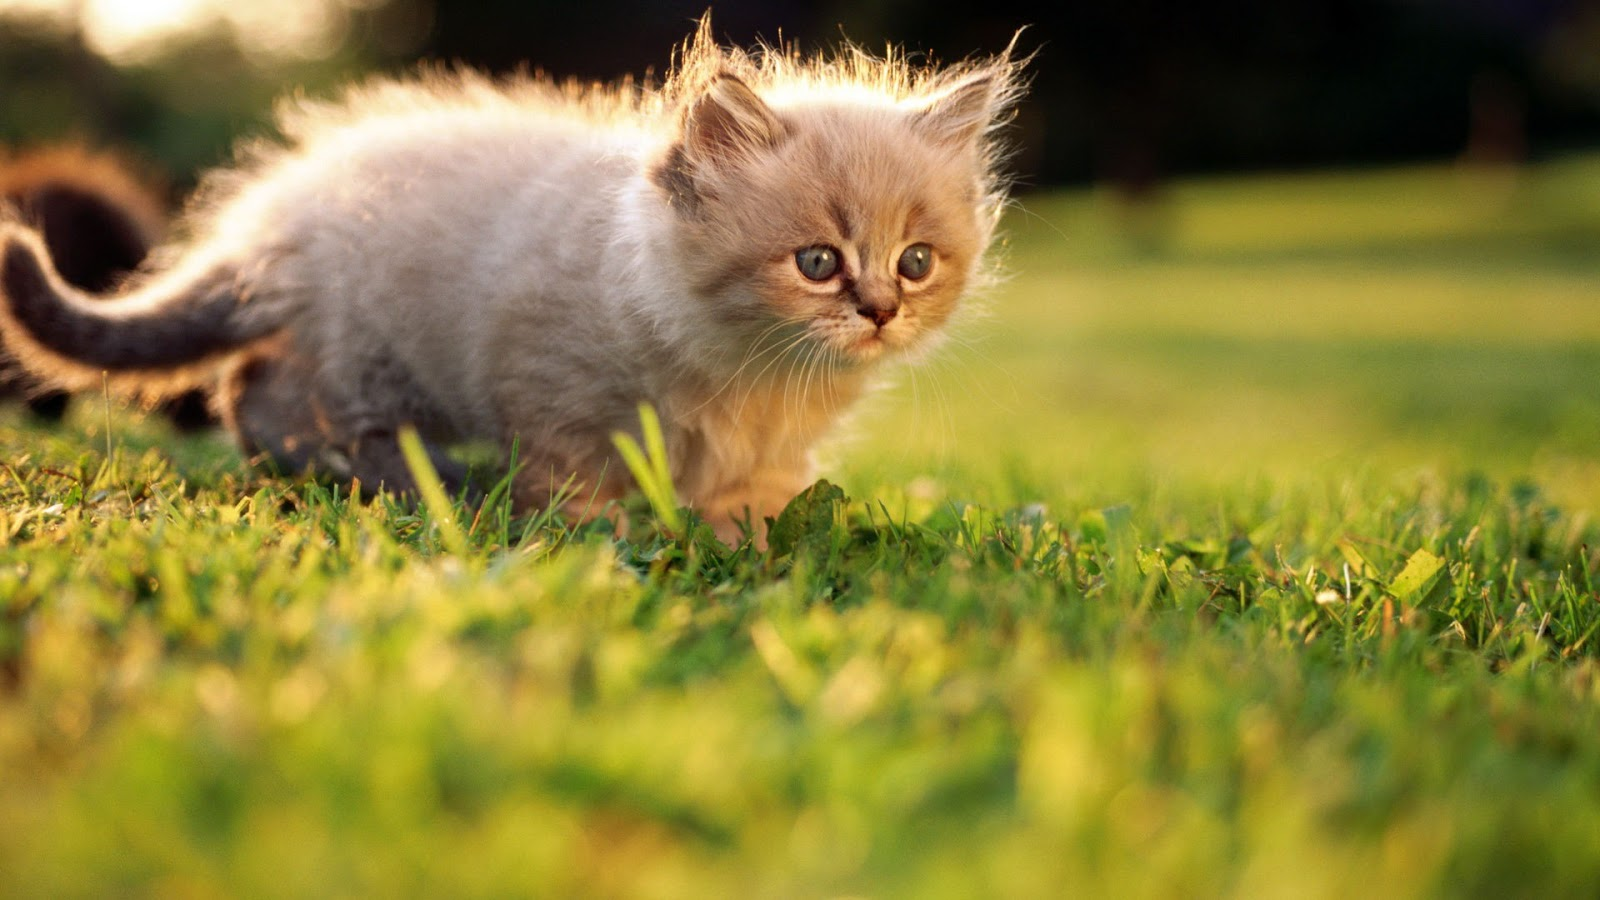 Activating Thoughts: Cute Cats and kittens